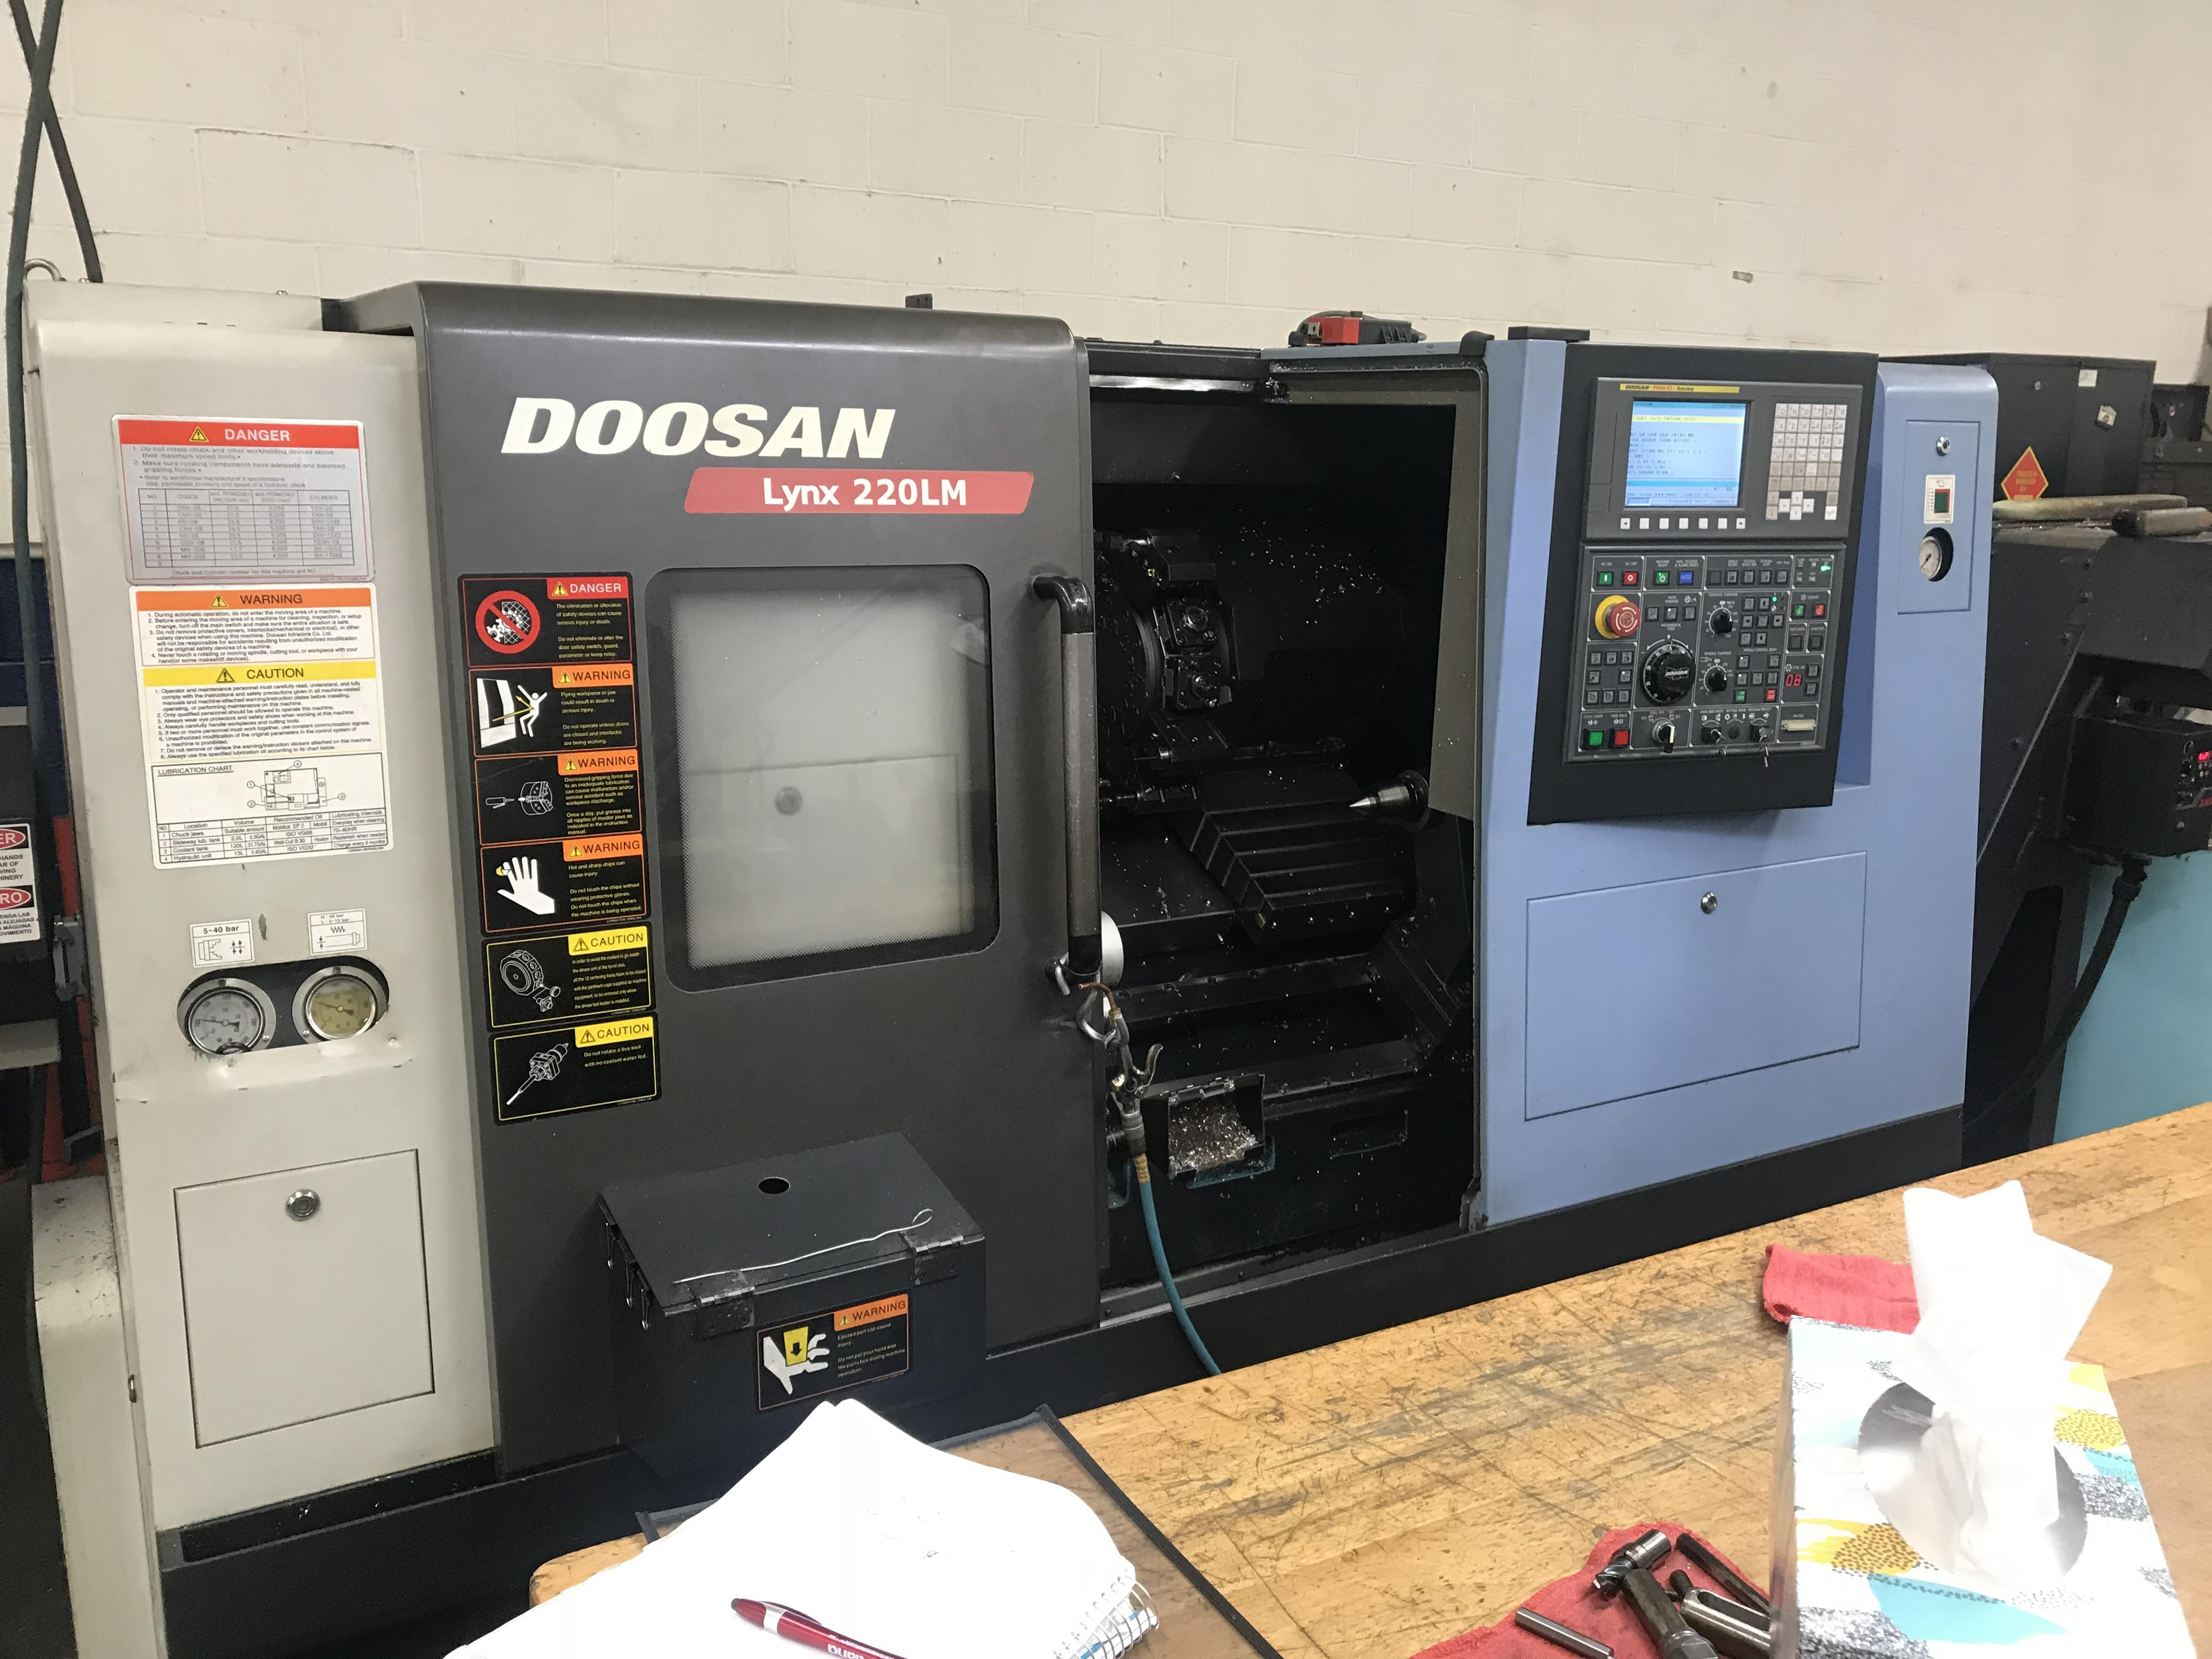 "Doosan Lynx 220LMA CNC Lathe, Fanuc i, 6"" Chuck, 24 Position Turret, Live Milling, Parts Catcher, Probe, Live Holders, Std Holders, Bar Feed, Low Hours, 2013"